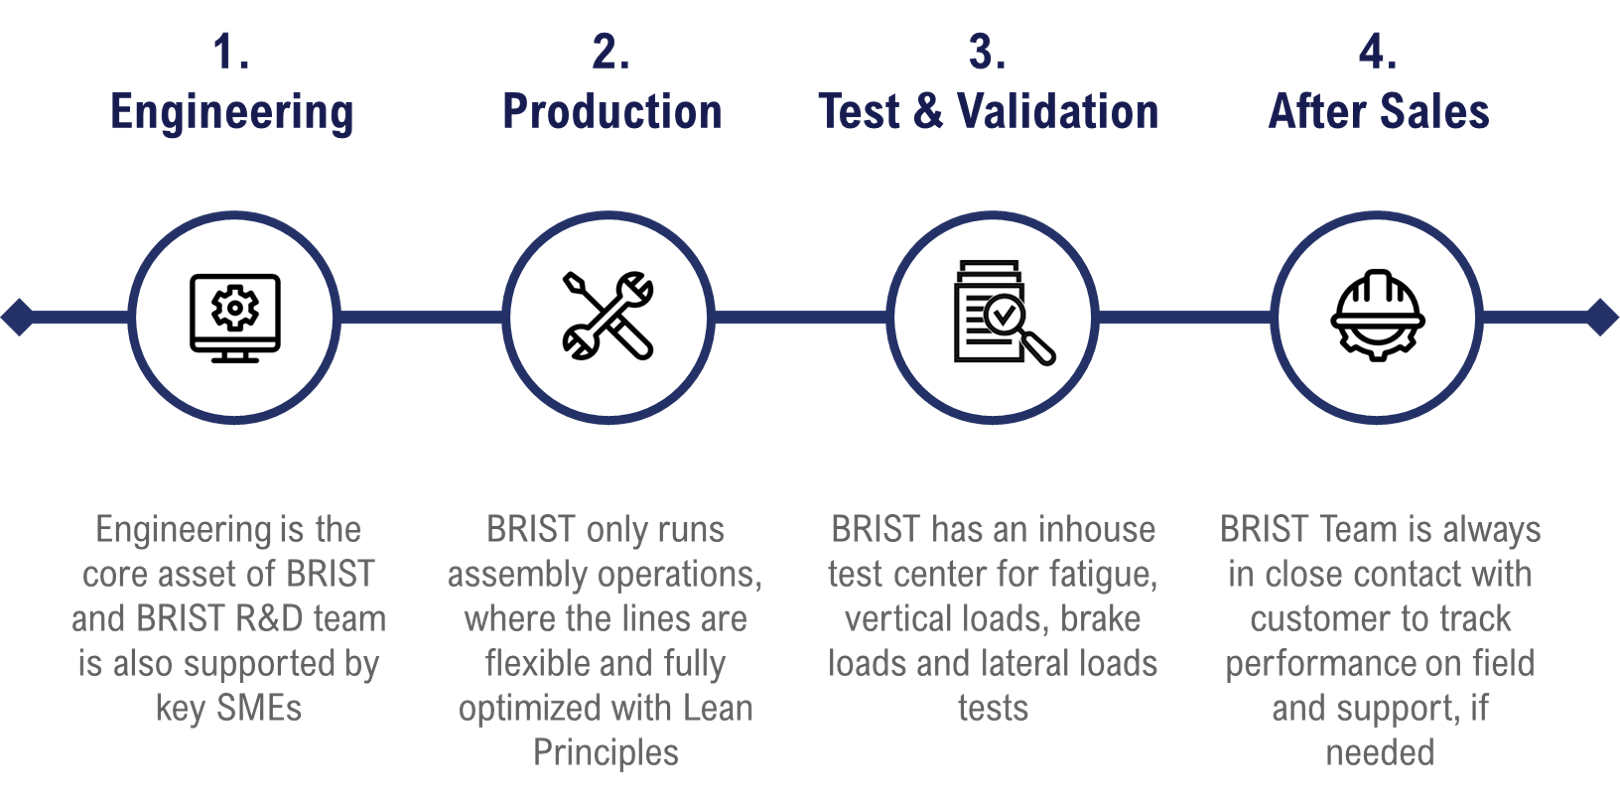 End-to-End Product Responsibility of BRIST